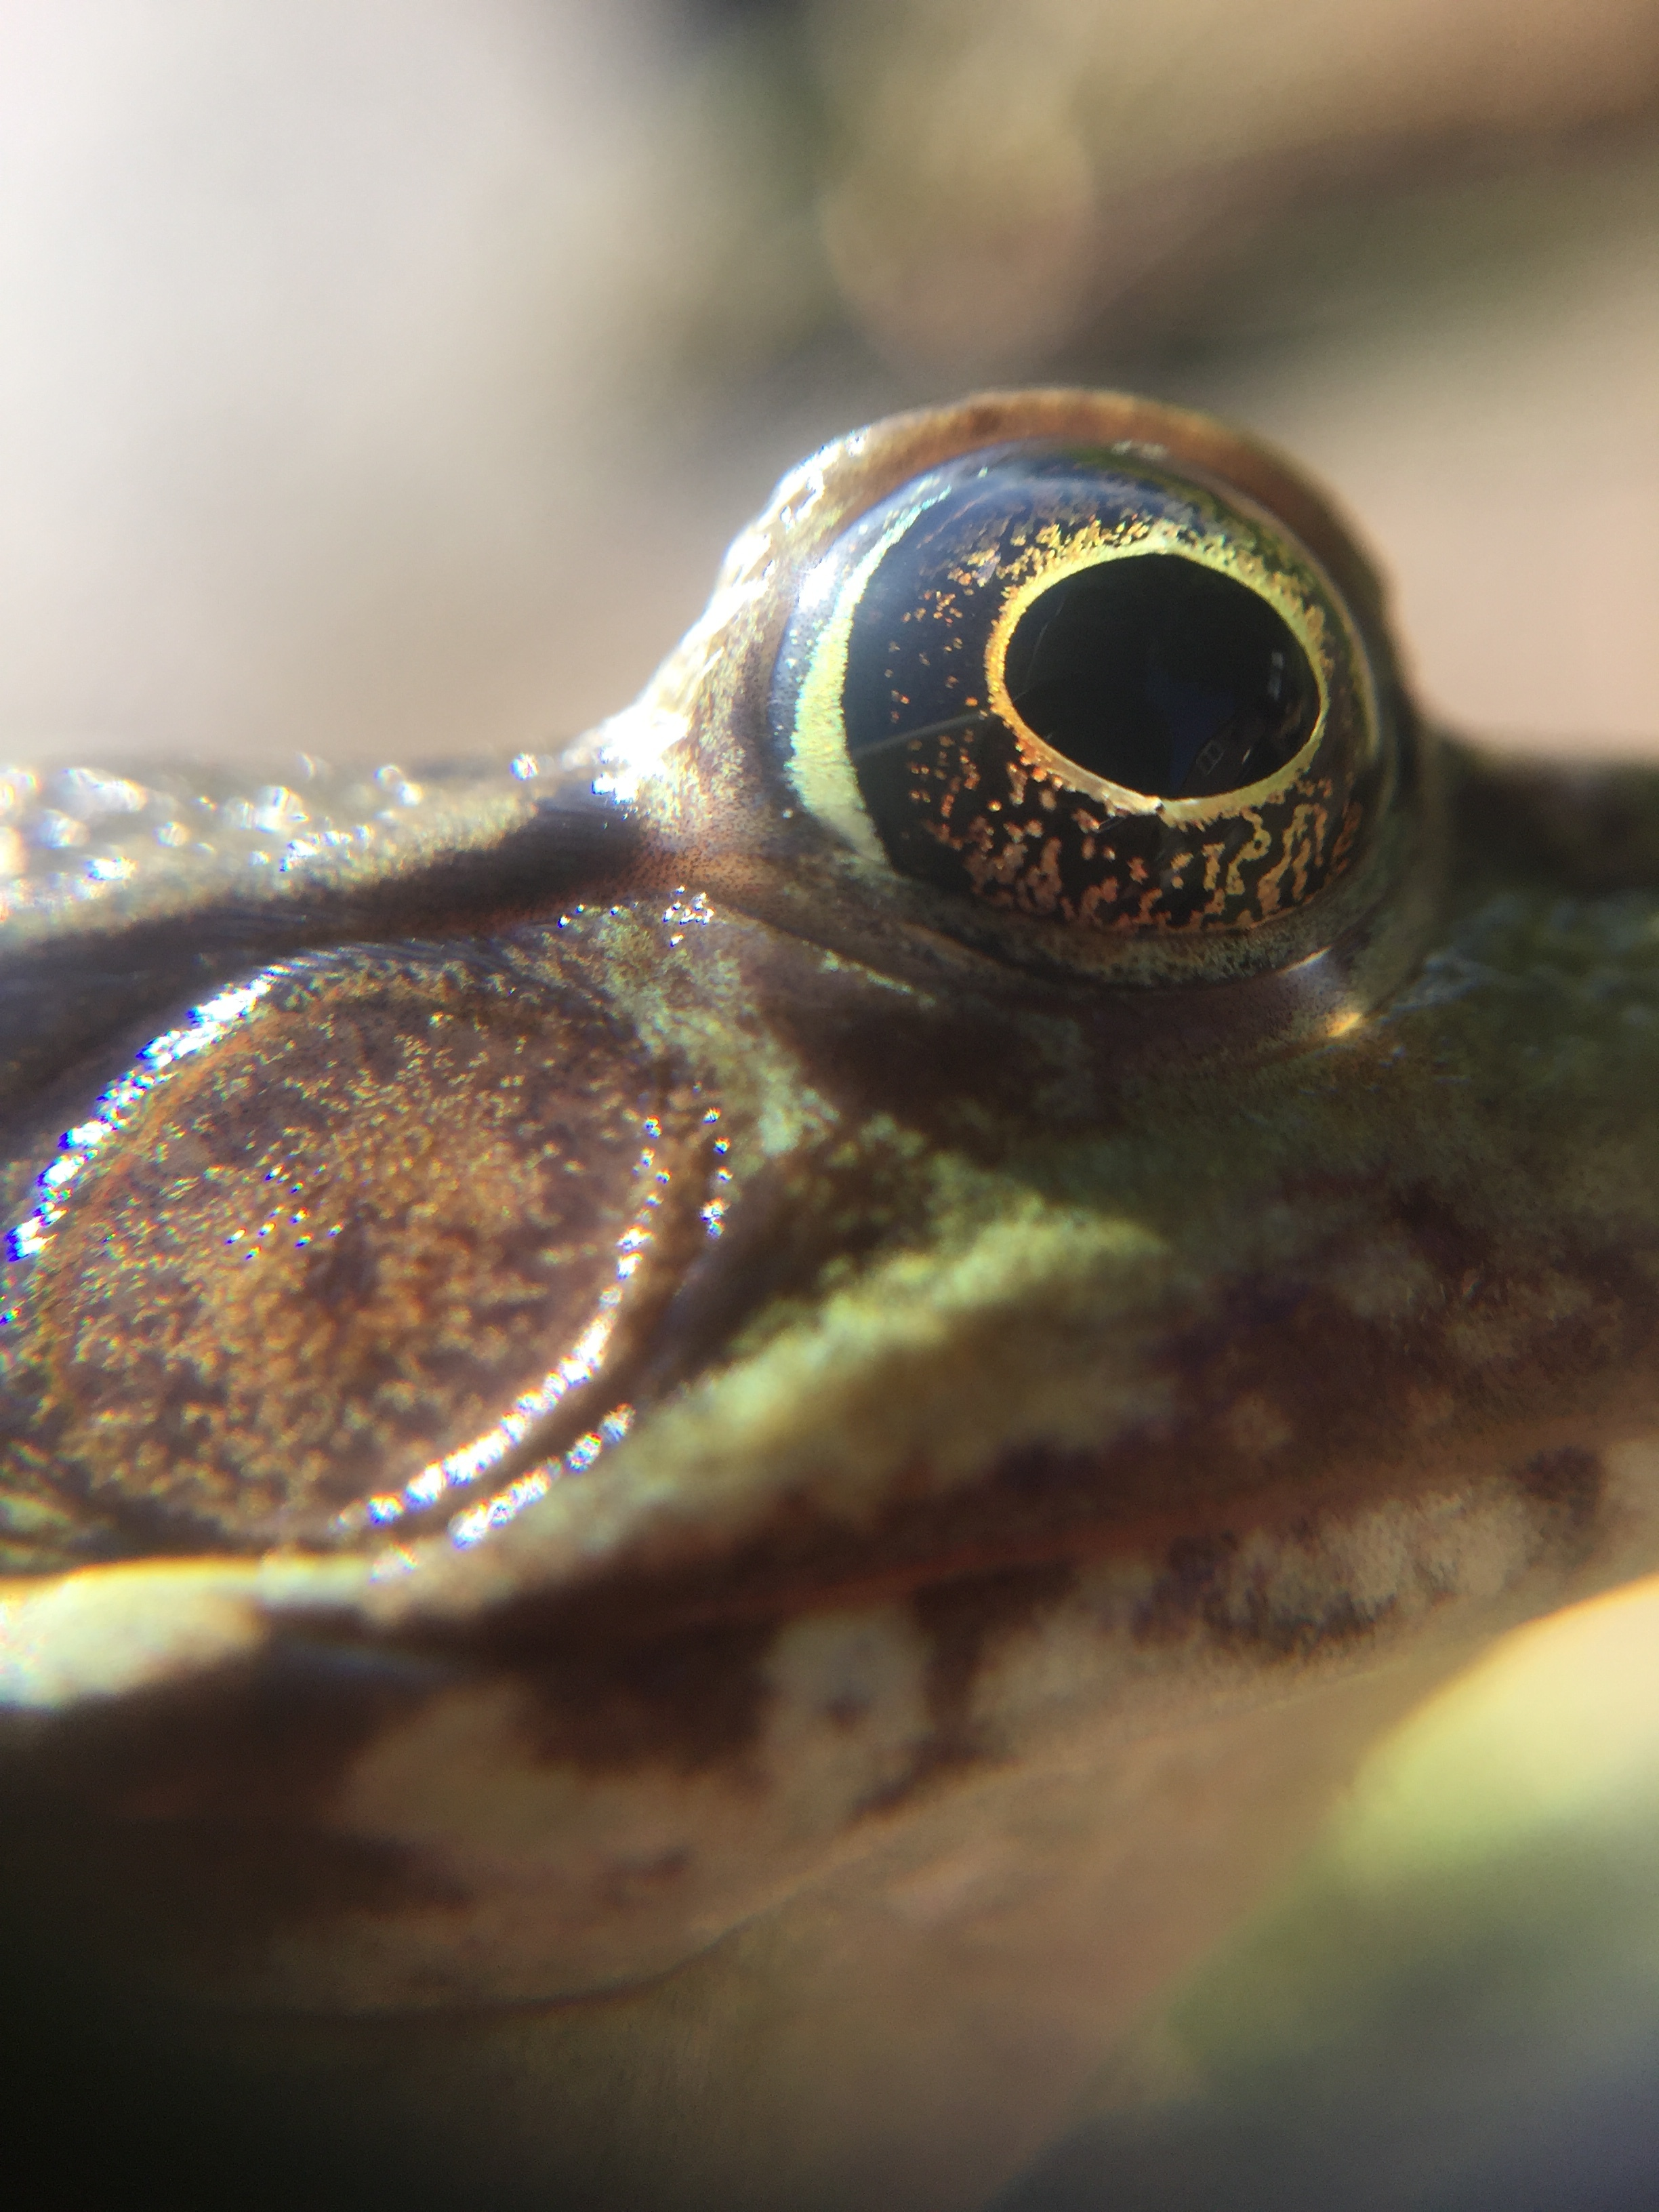 Close up image of the tympanum and eye of a green frog